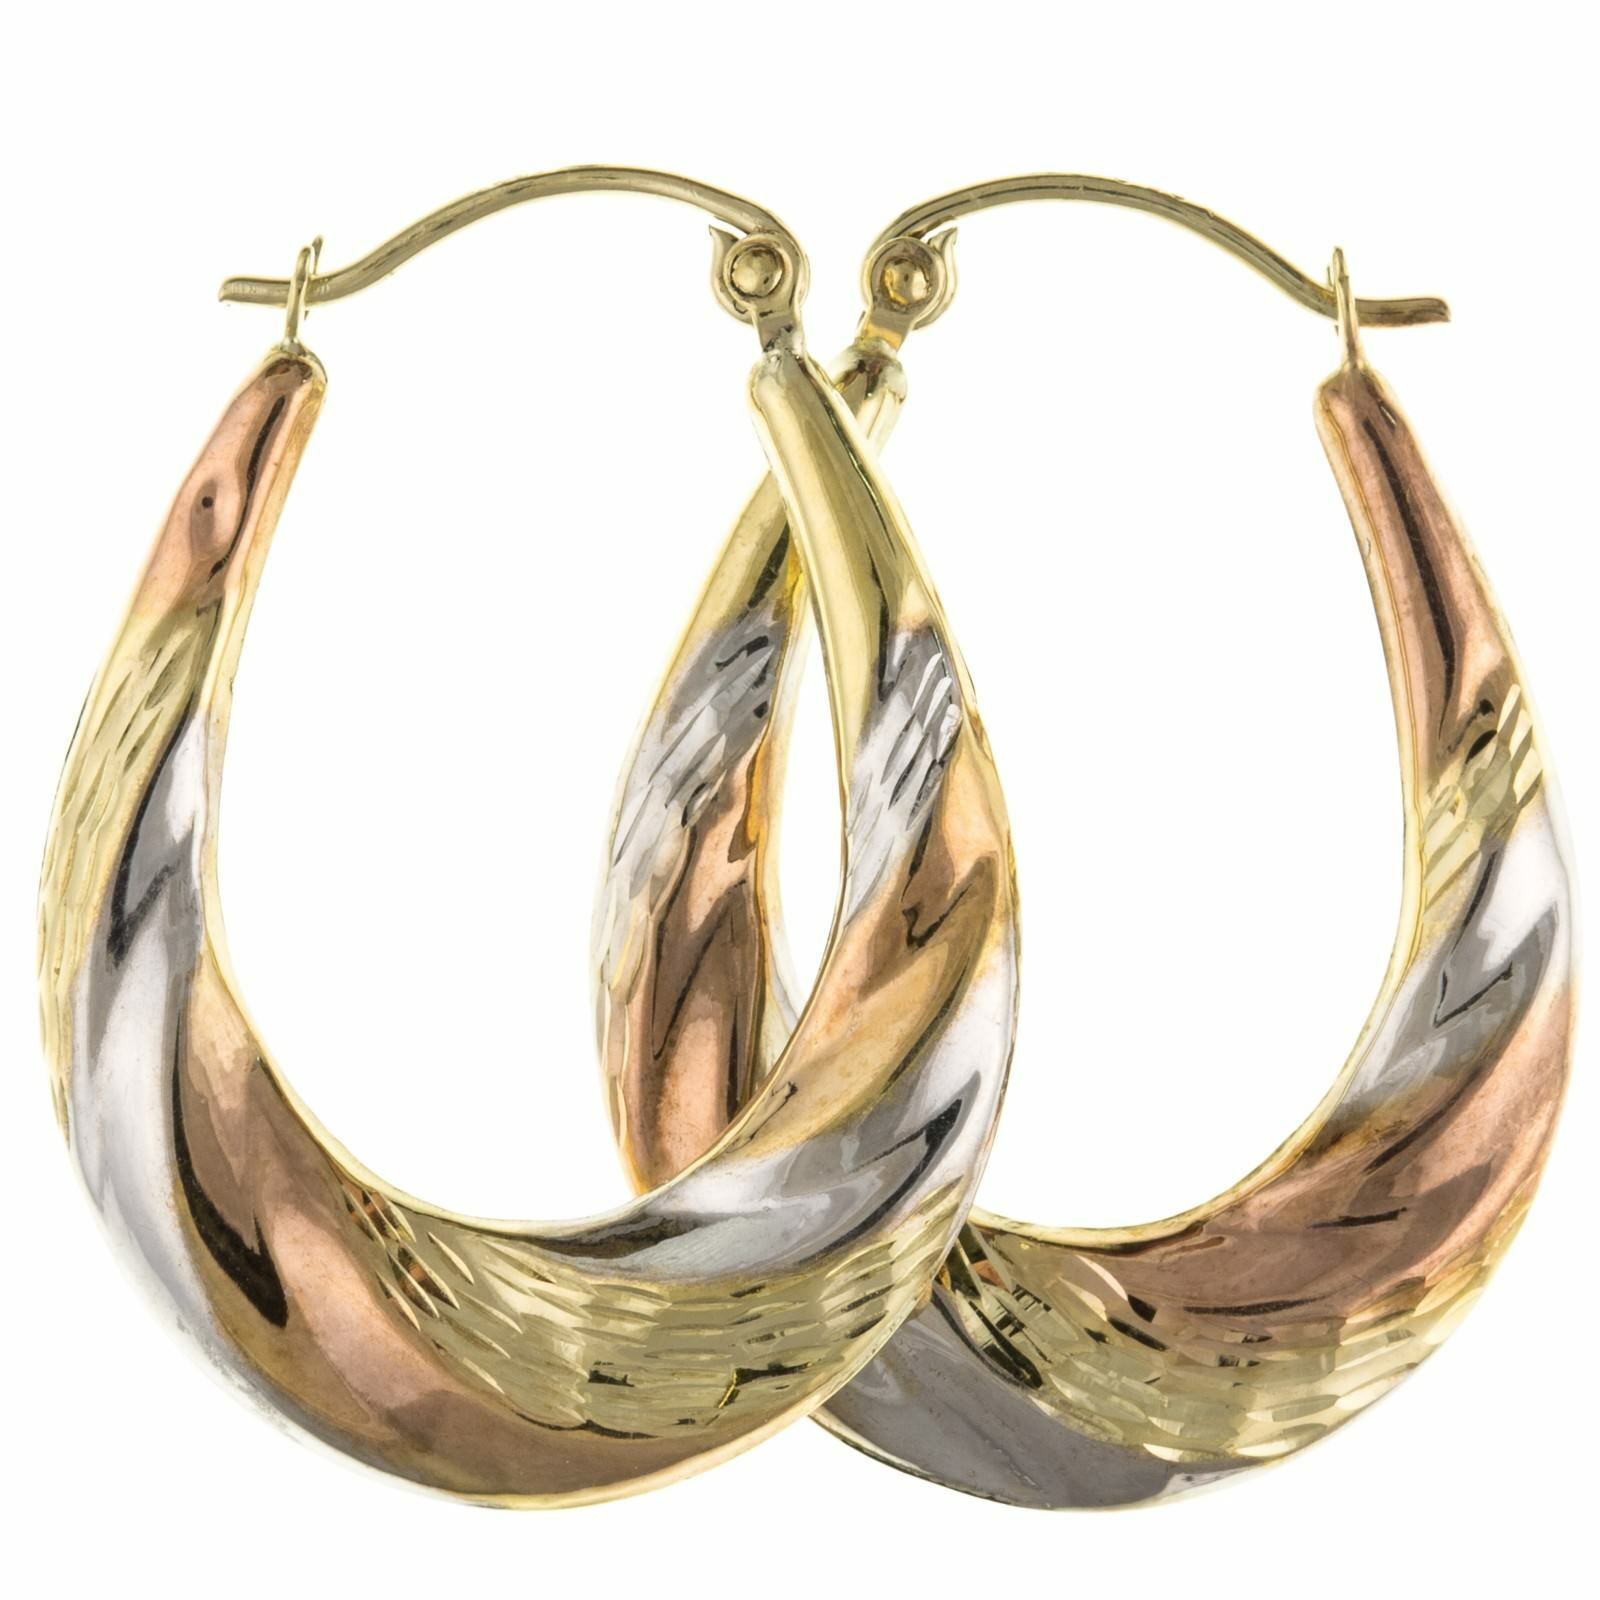 3 Tone 9ct Tri gold Large Oval Creole Hoop Earrings Jewellery